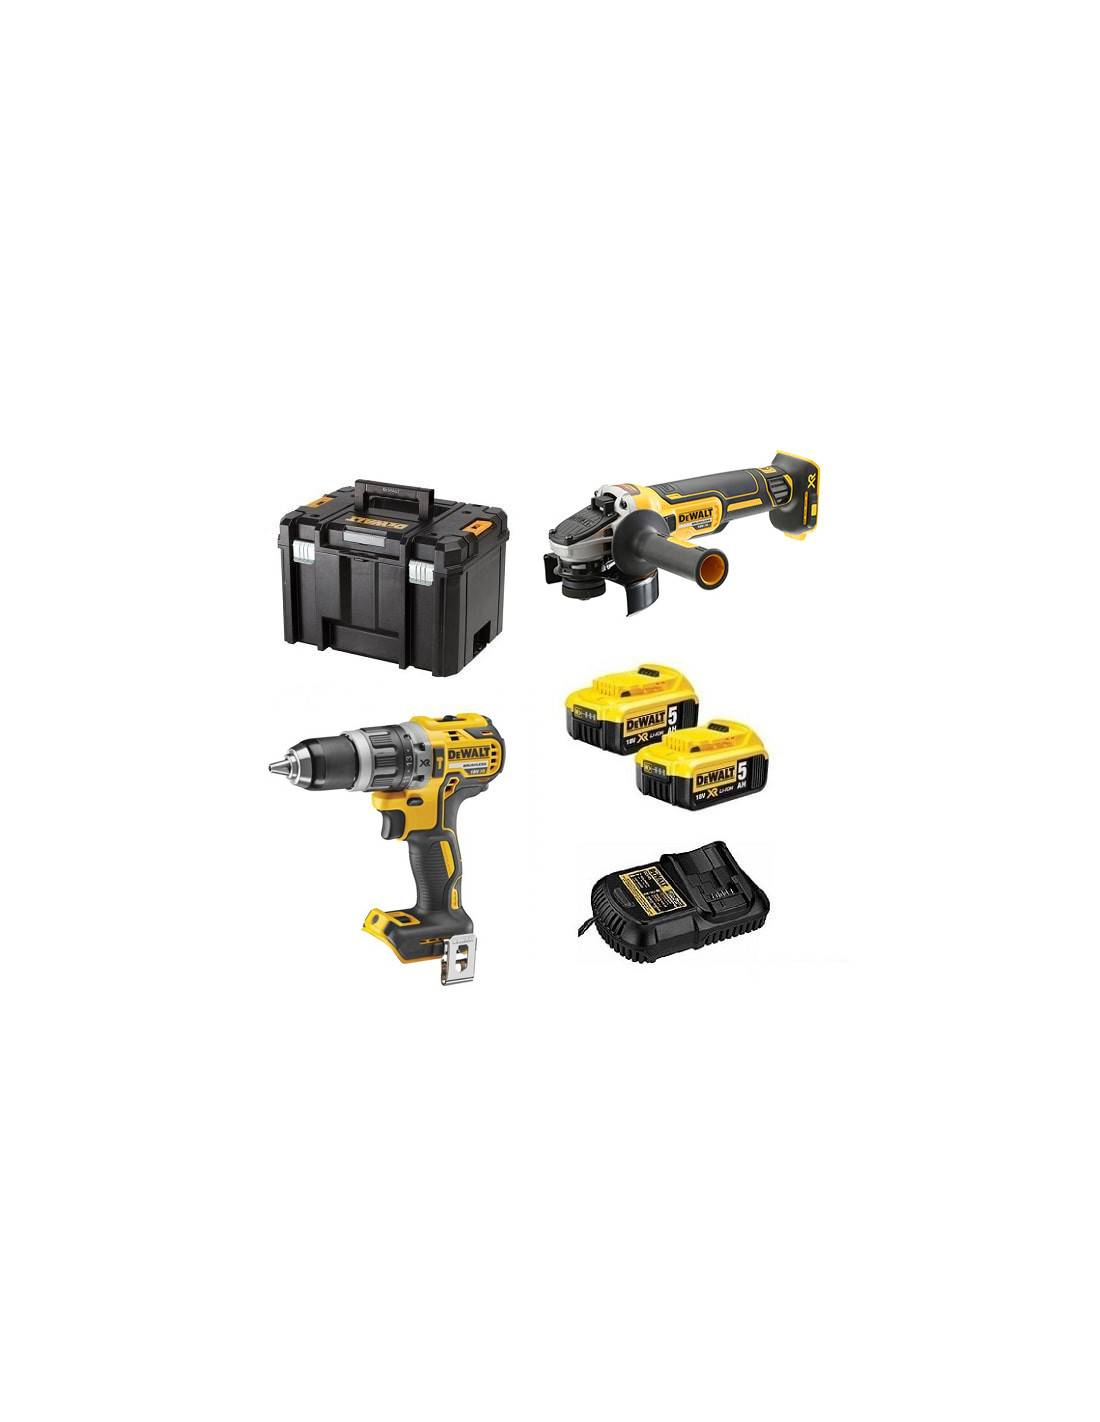 Pack Perceuse visseuse à percussion DCD796 + meuleuse 125 mm DG405 (2x5AH) en coffret T-STAK - DEWALT - DCK2080P2T